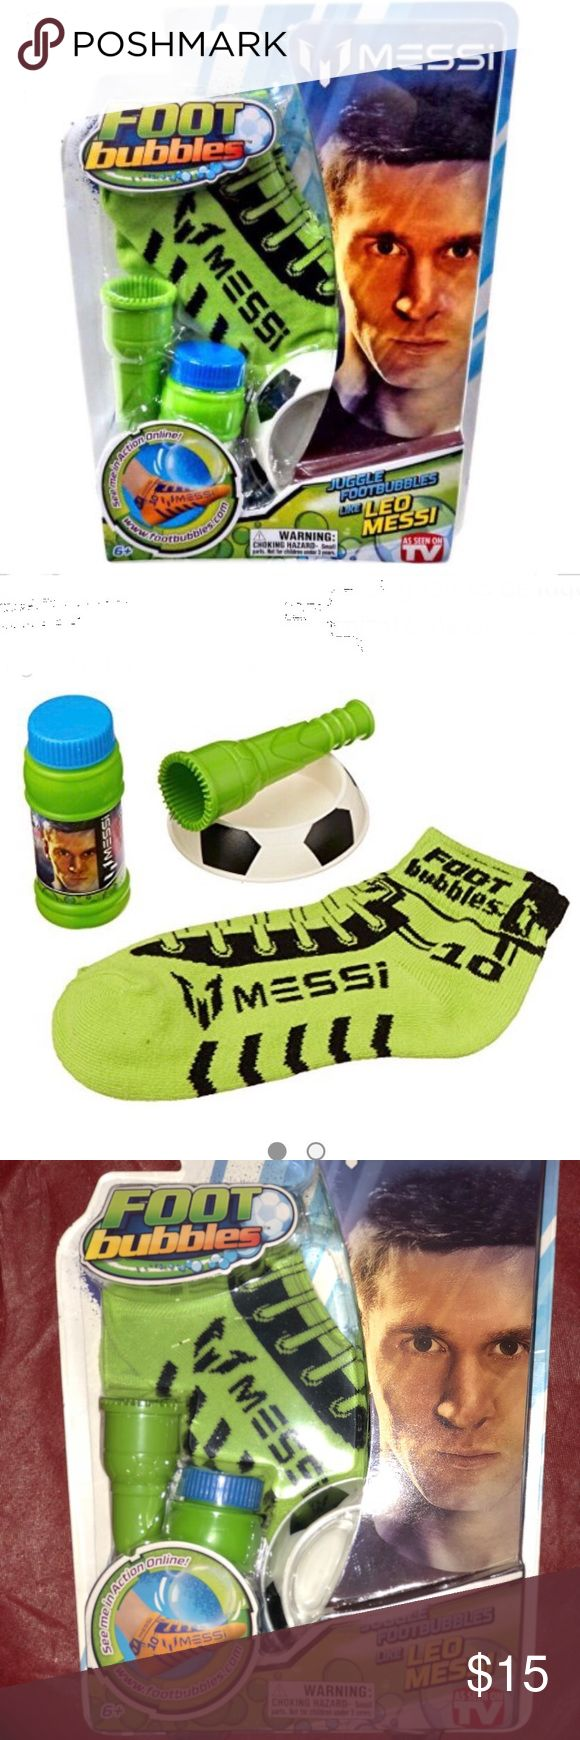 Leo Messi Foot Bubbles Kit Have you got what it takes, to take on the greatest? Step up with Leo Messi FootBubbles and juggle FootBubbles like the greatest soccer player in the world! The secret is the winning team of FootBubbles Super Solution and Messi Socks. The Super Solution is specially formulated and made to bounce with your feet when used with the specially designed Messi socks. Juggle FootBubbles by yourself or keep the bubble bouncing for as long as you can with your friends. The…